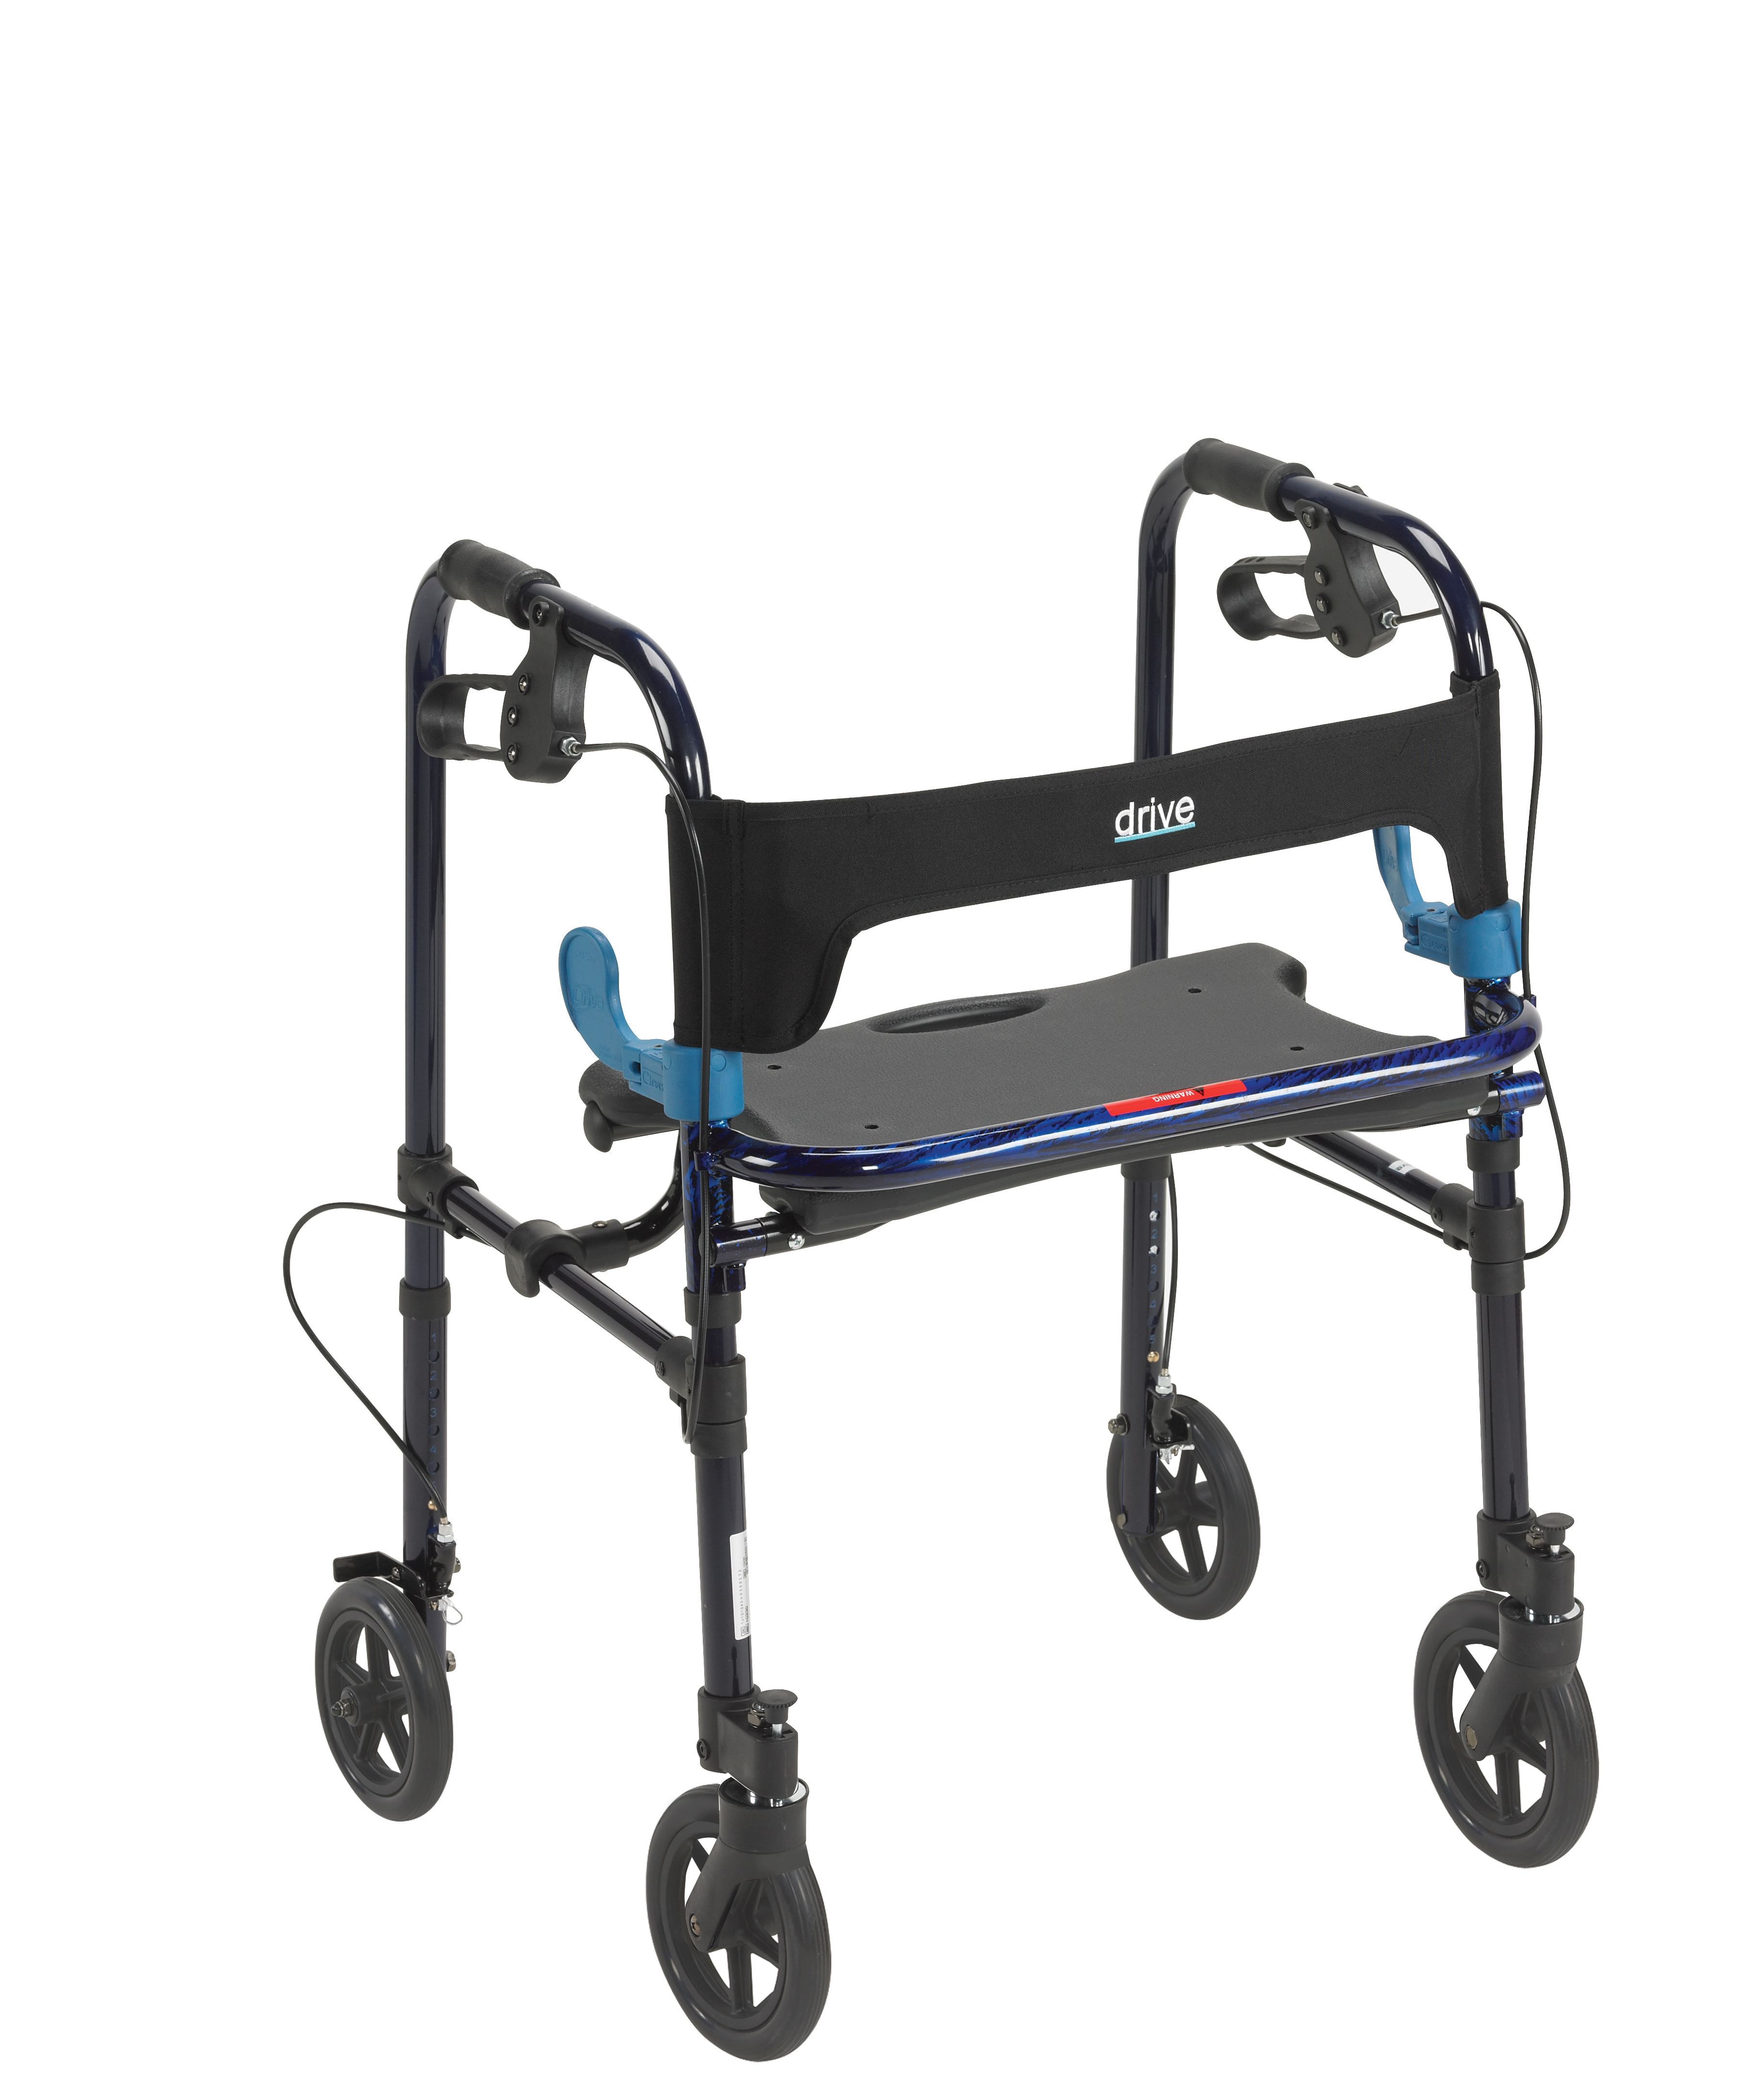 Drive Clever Lite Rollator Walker with 8